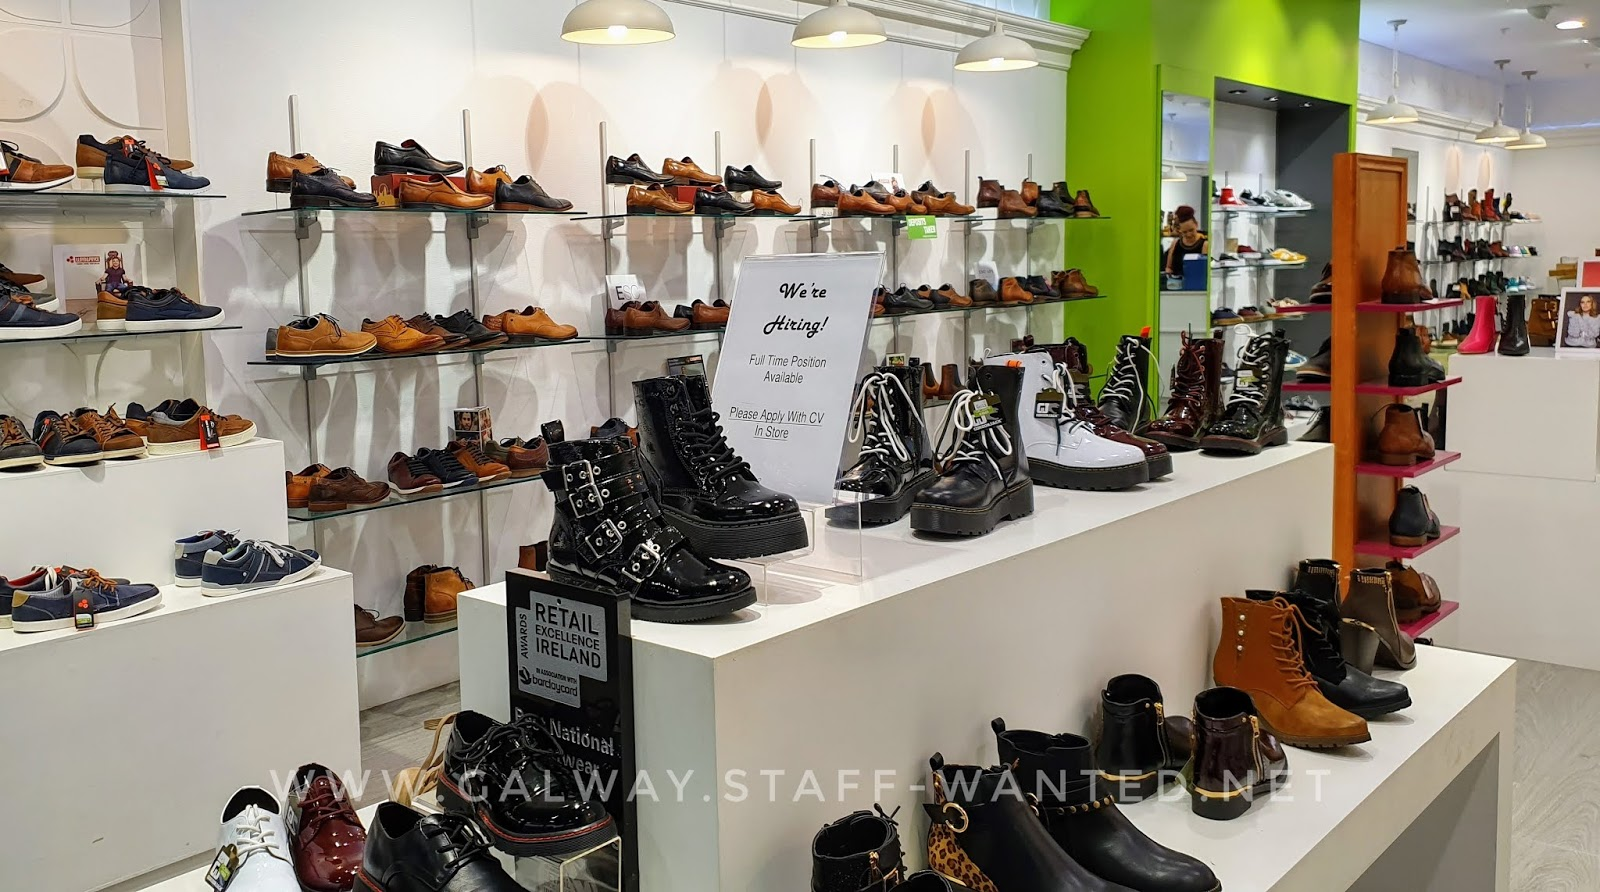 autumnal colour (expecially brown) shoes on display in a city shopping mall shoe shop with white walls and display cabinets and lime-green feature wall  - surrounding a sign advertising for new staff to work in the shoe-shop